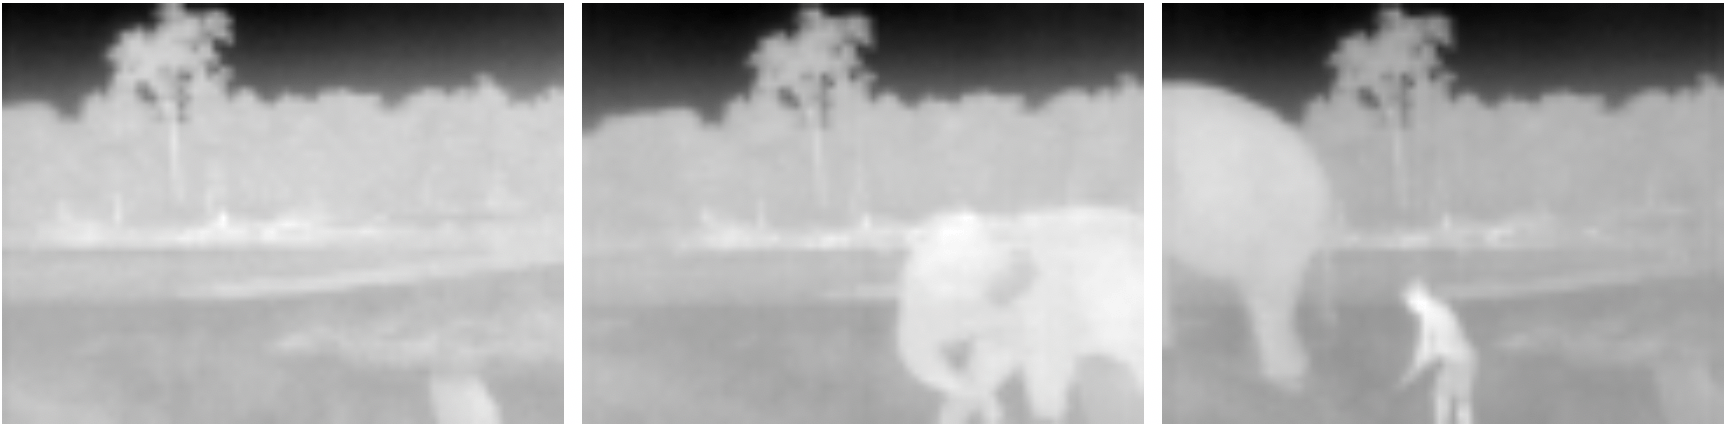 Arribada Initiative Update: Testing our prototype thermal cameras